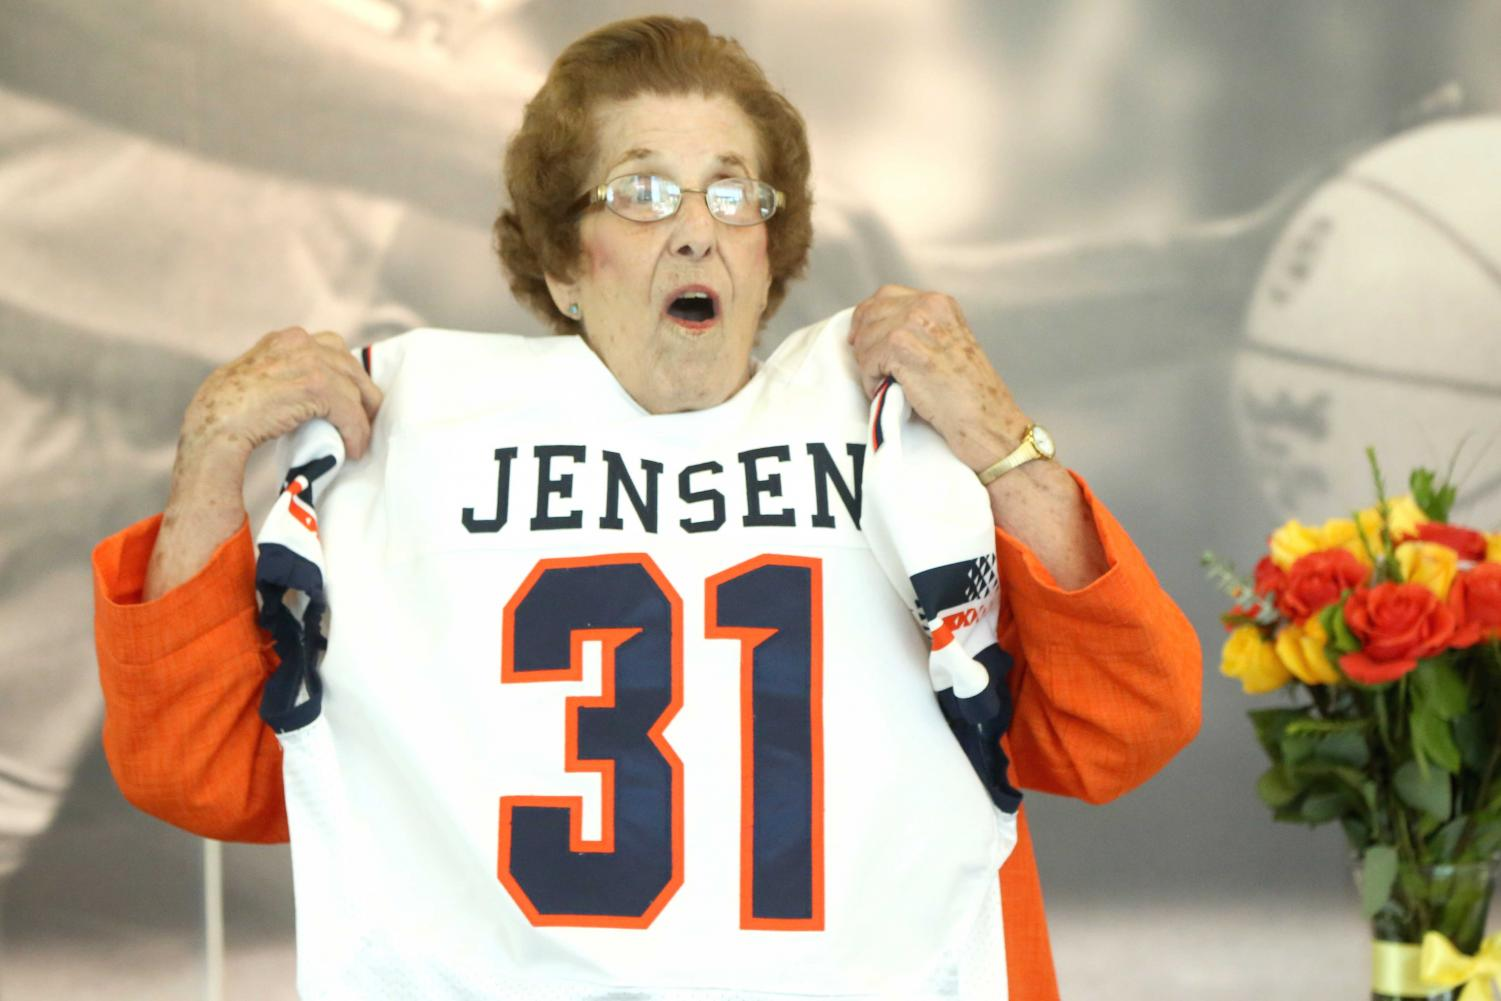 Katie Jensen reacts to the custom-made football jersey that Athletic Director Jim Senter gave her.